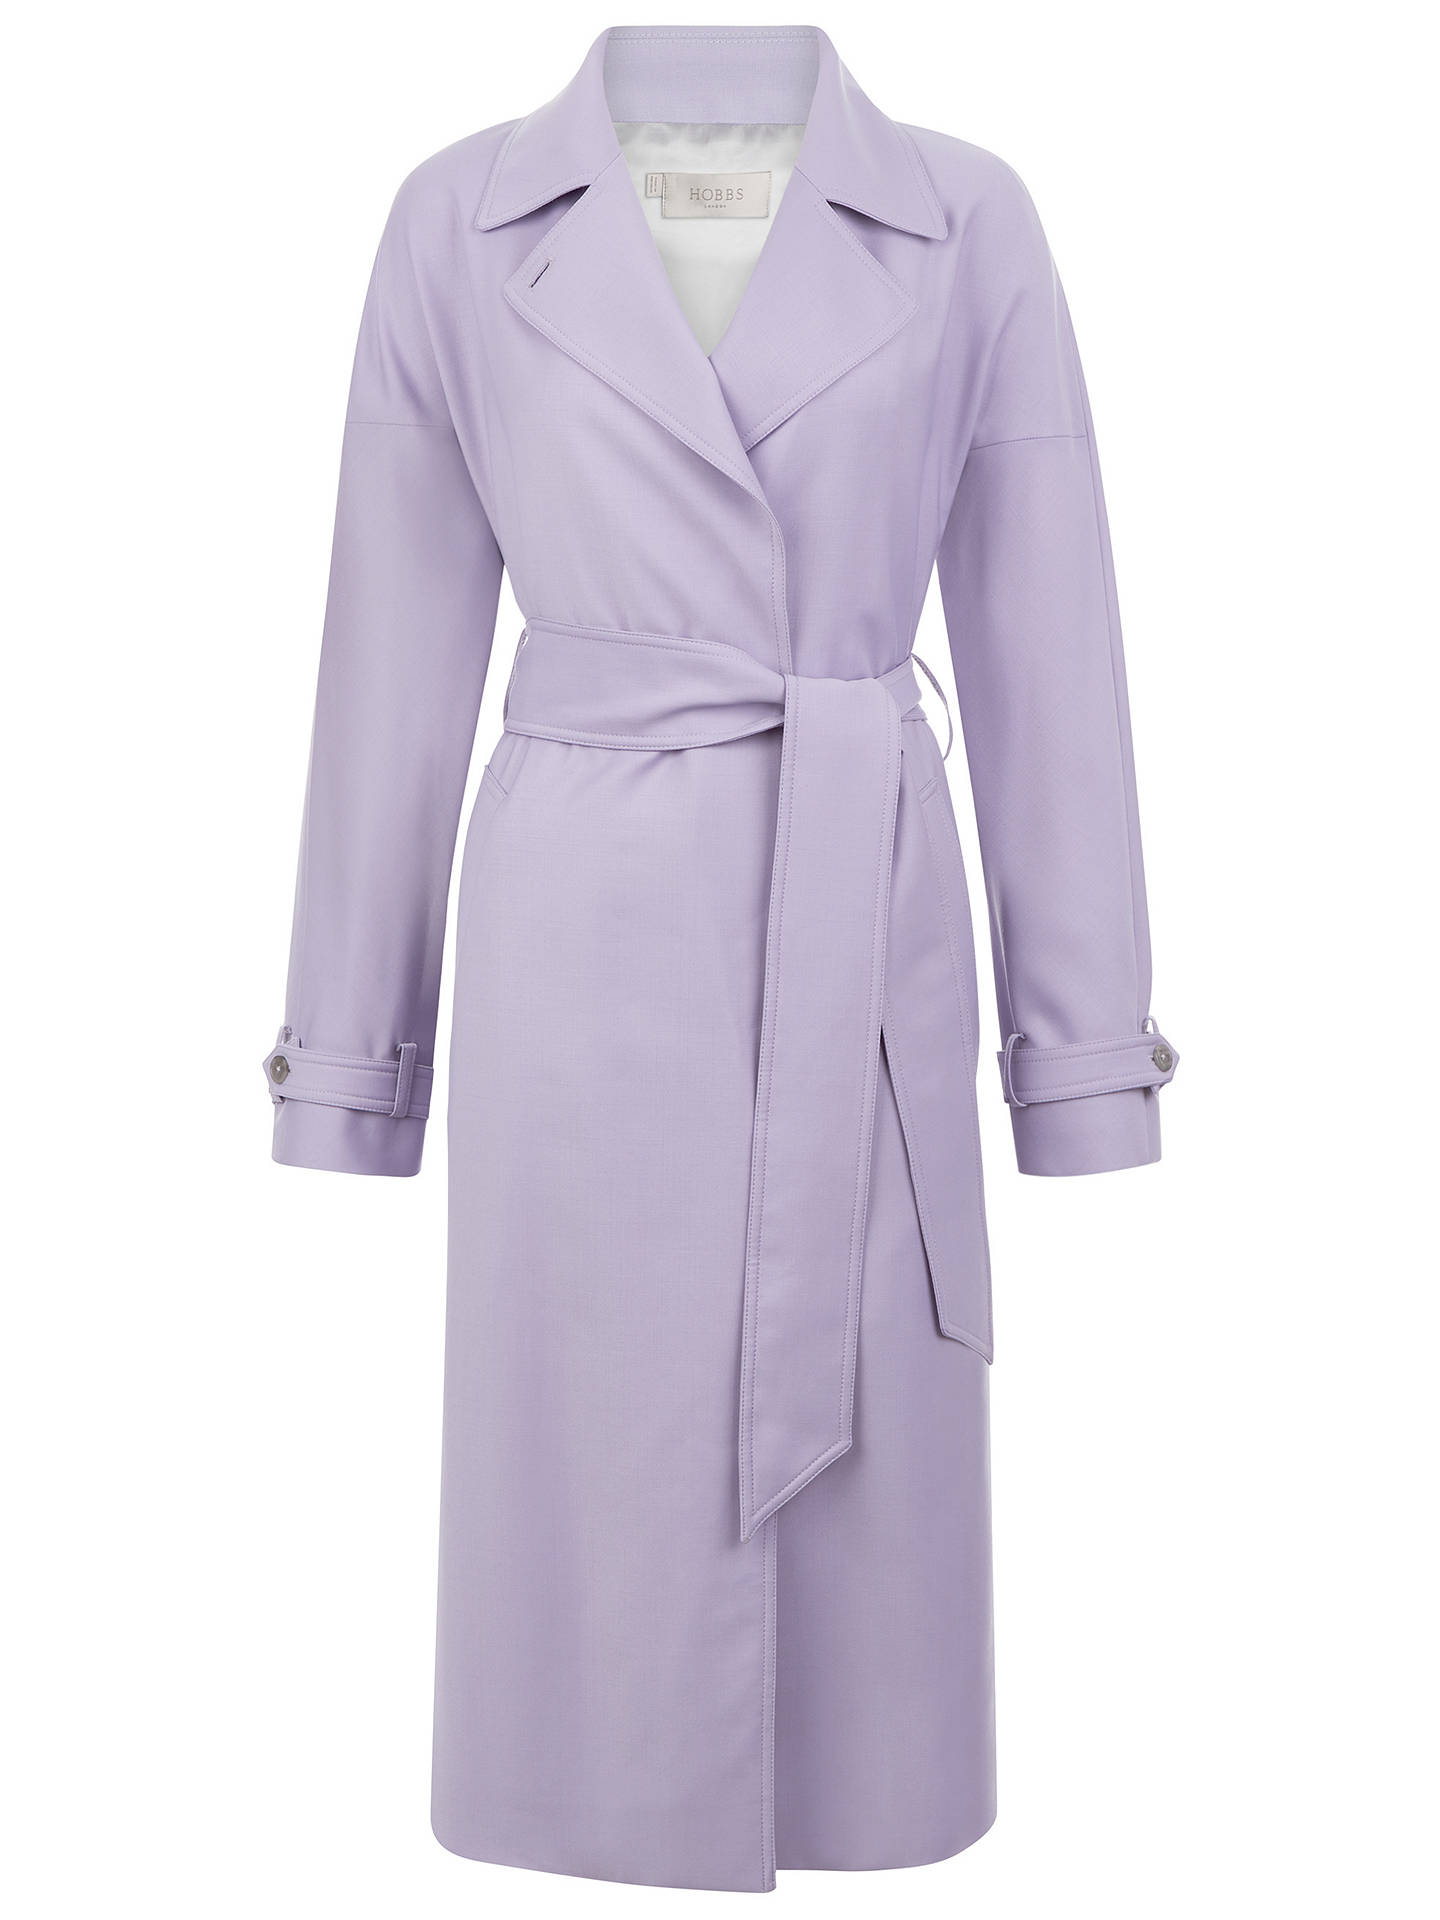 BuyHobbs Lydia Trench Coat, Lilac, 6 Online at johnlewis.com